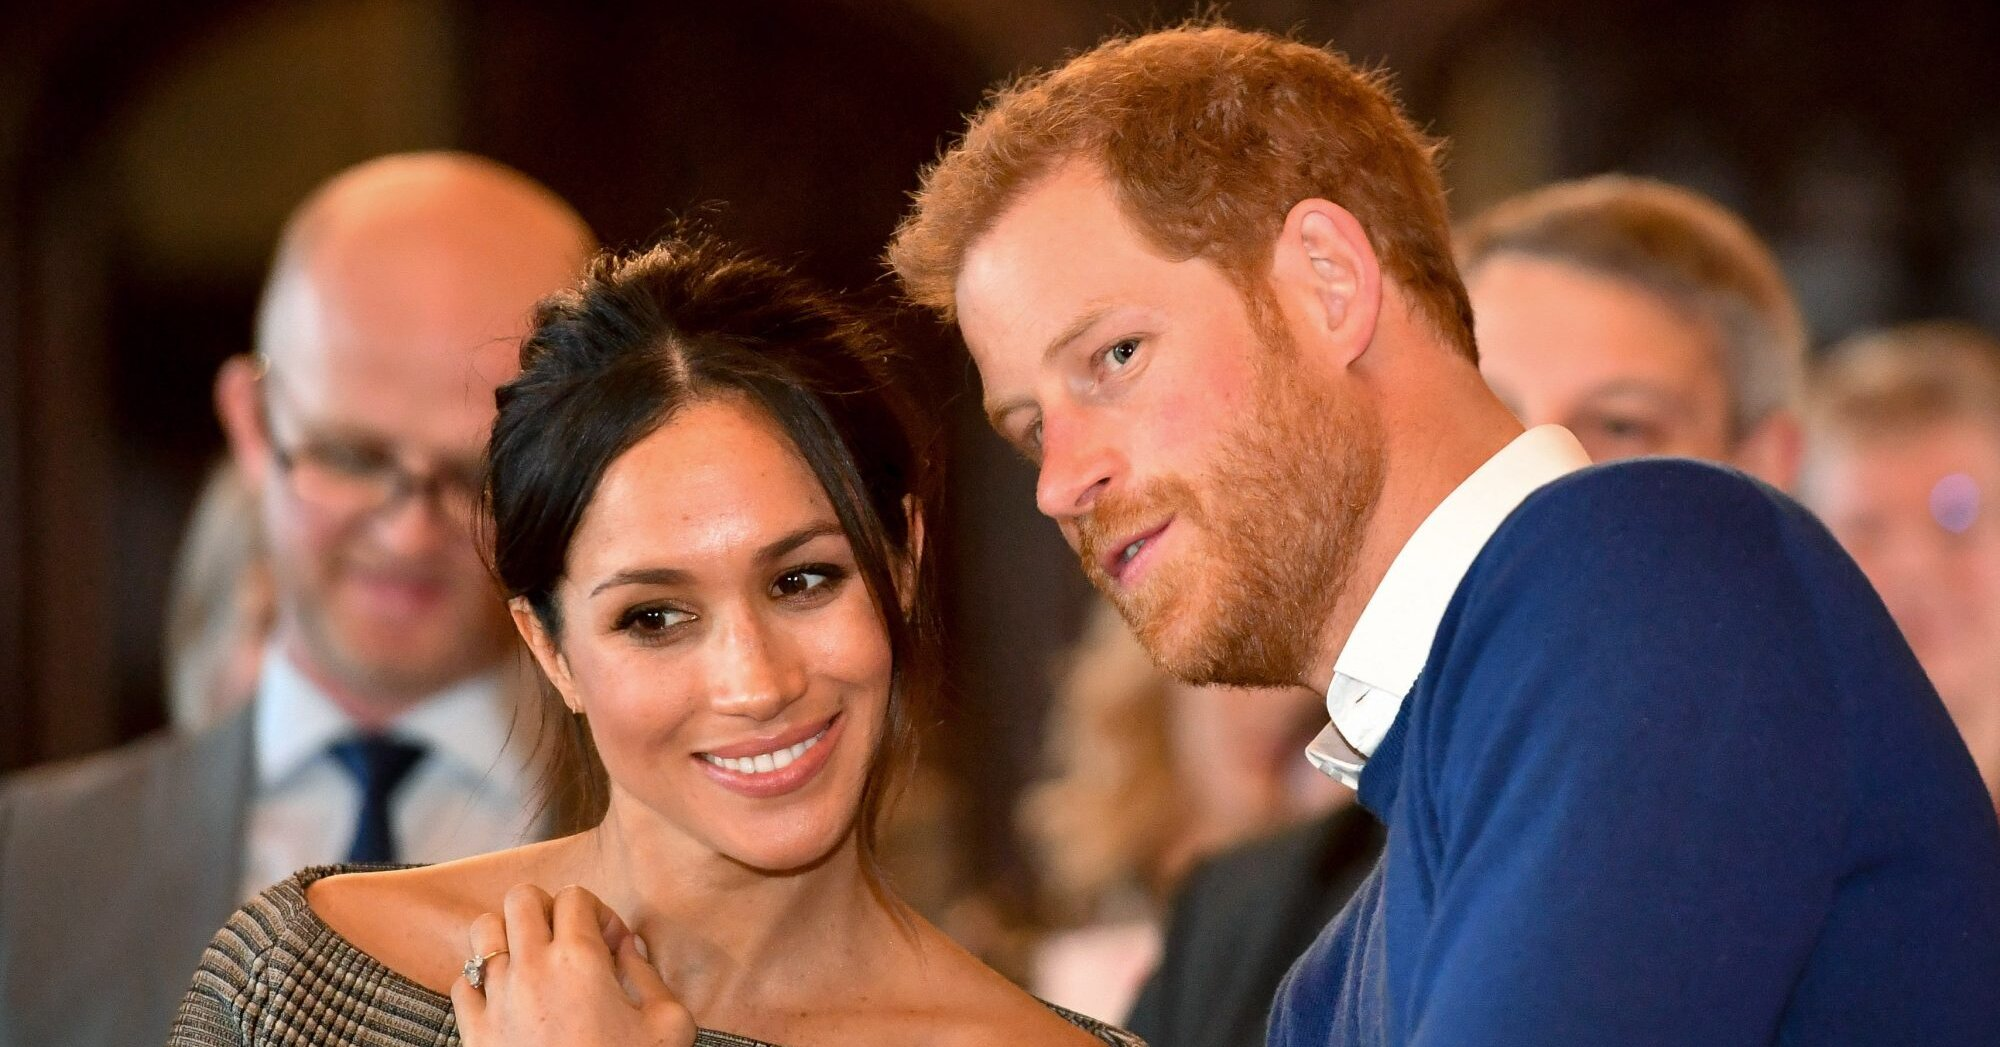 Prince Harry and Meghan Markle Started Planning Their Wedding Just One Year After Meeting